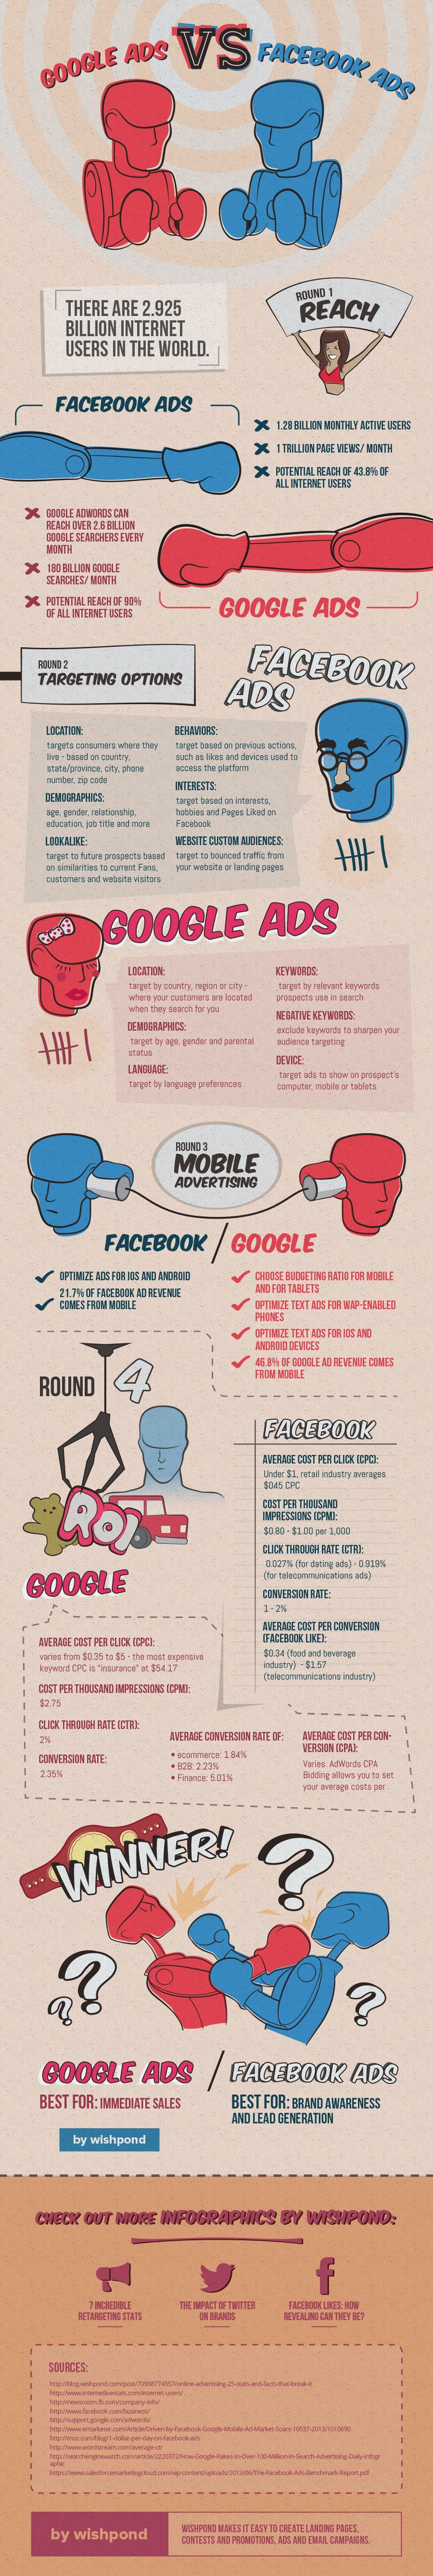 Are Facebook Ads or Google Ads more effective for your business? Check this super helpful infographic!